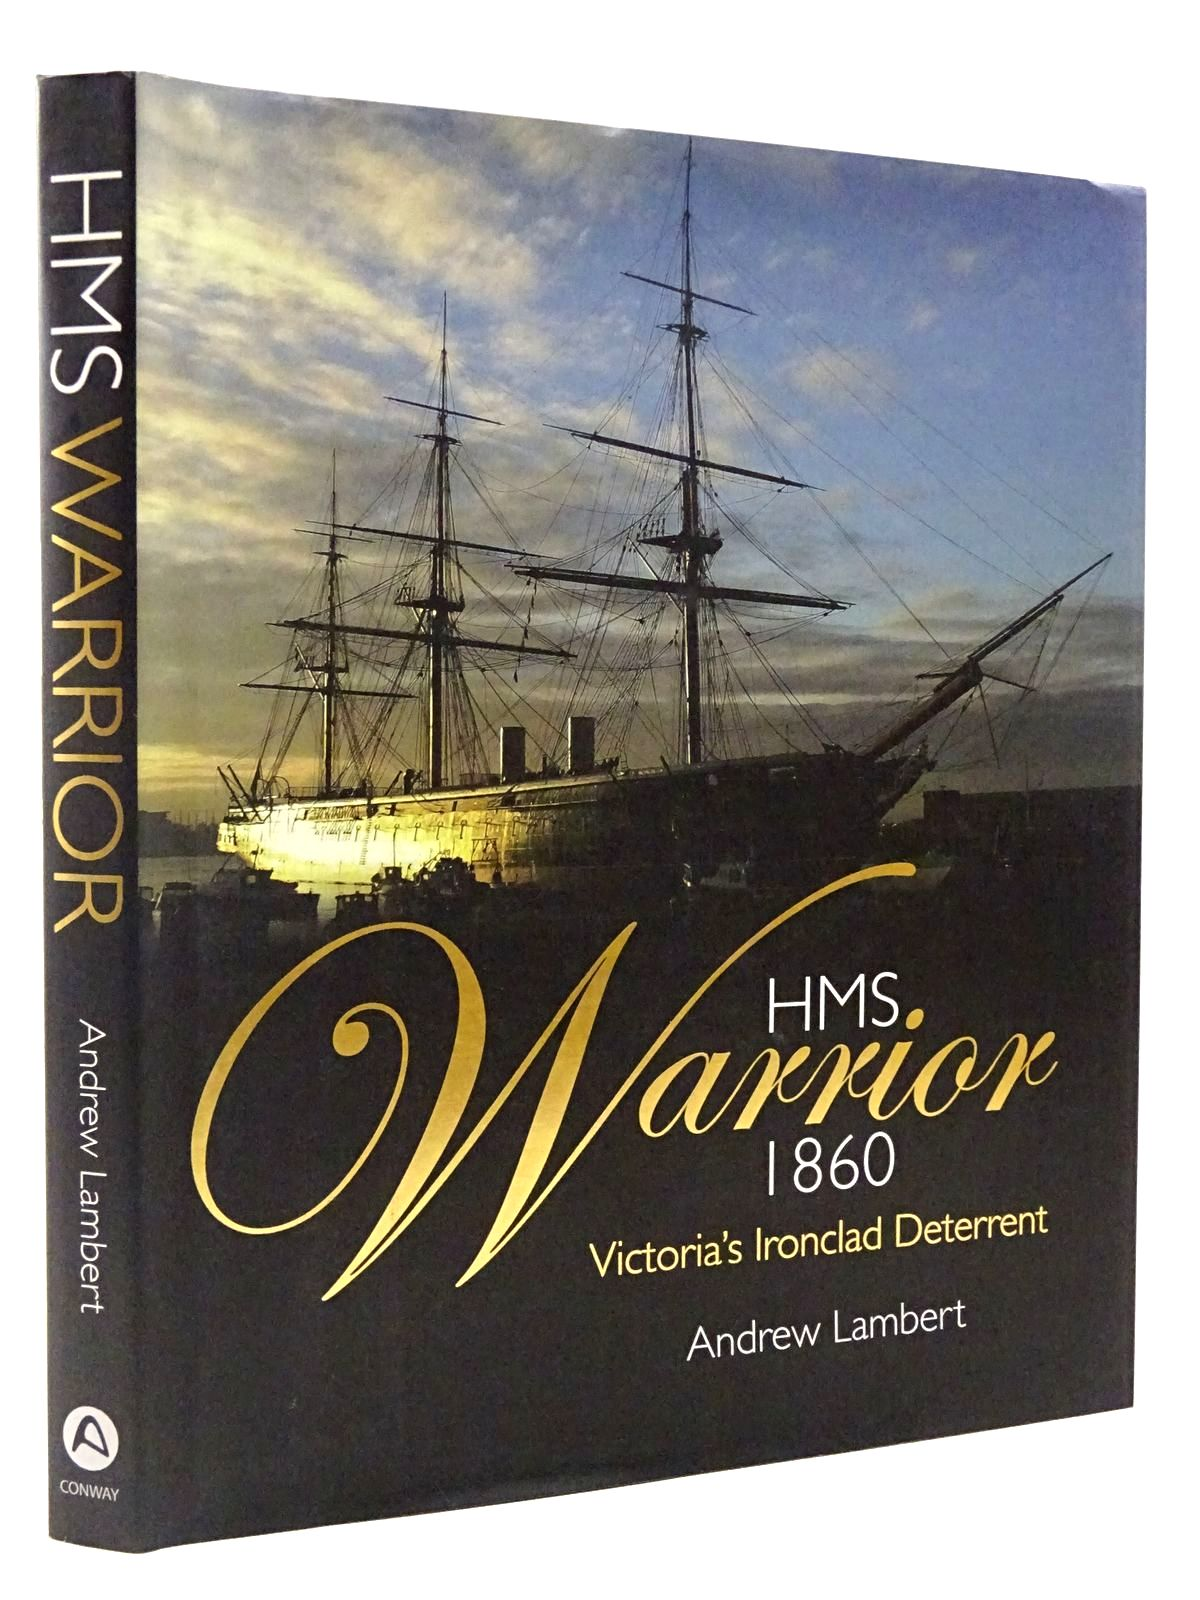 Photo of HMS WARRIOR 1860 VICTORIA'S IRONCLAD DETERRENT written by Lambert, Andrew published by Conway (STOCK CODE: 2129075)  for sale by Stella & Rose's Books